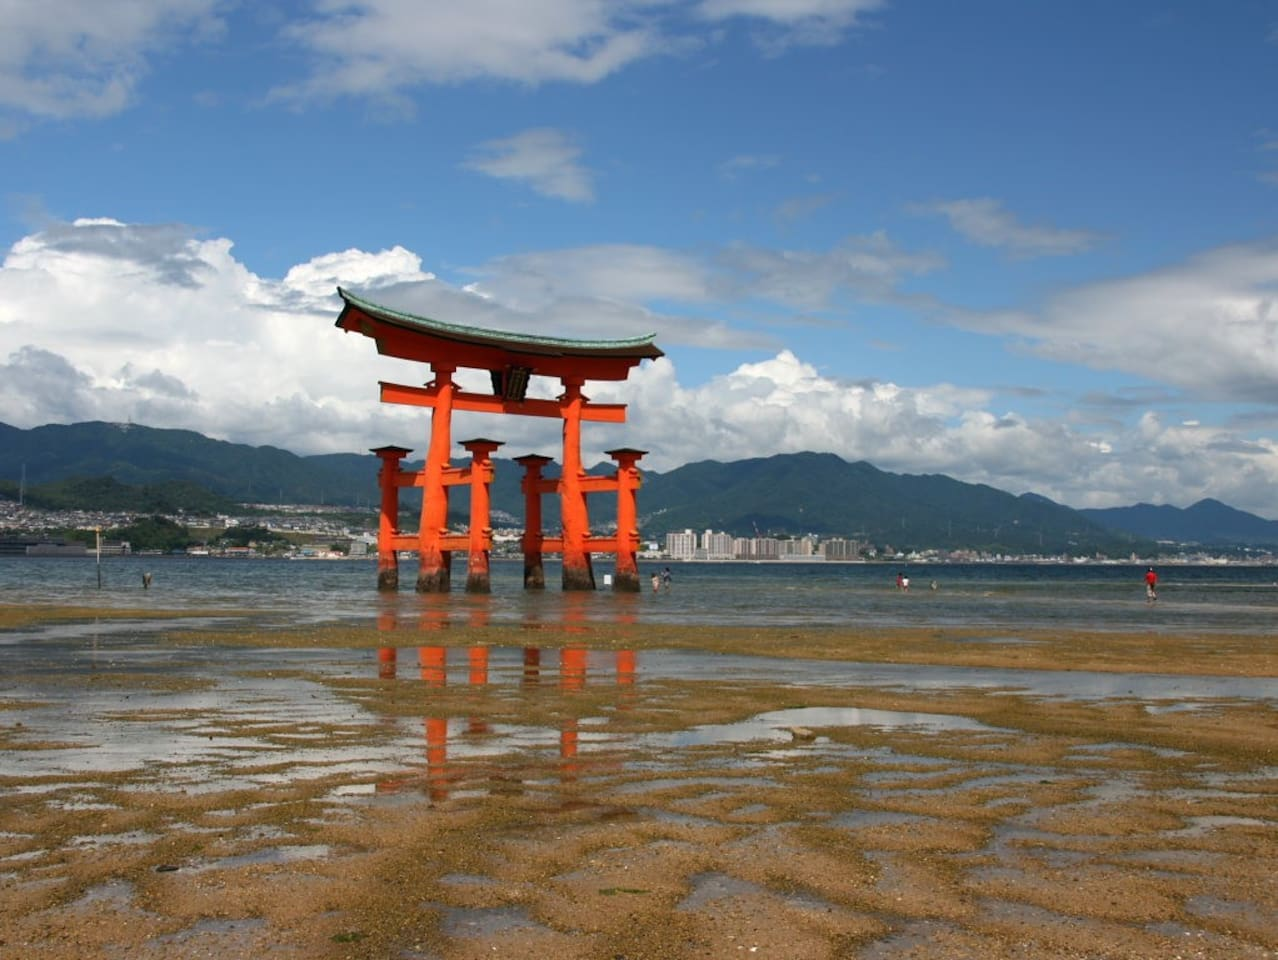 O-torii gate of Miyajima island  (1 station away from our nearest station)   Please note that the gate is covered for the moment because of the repair work.